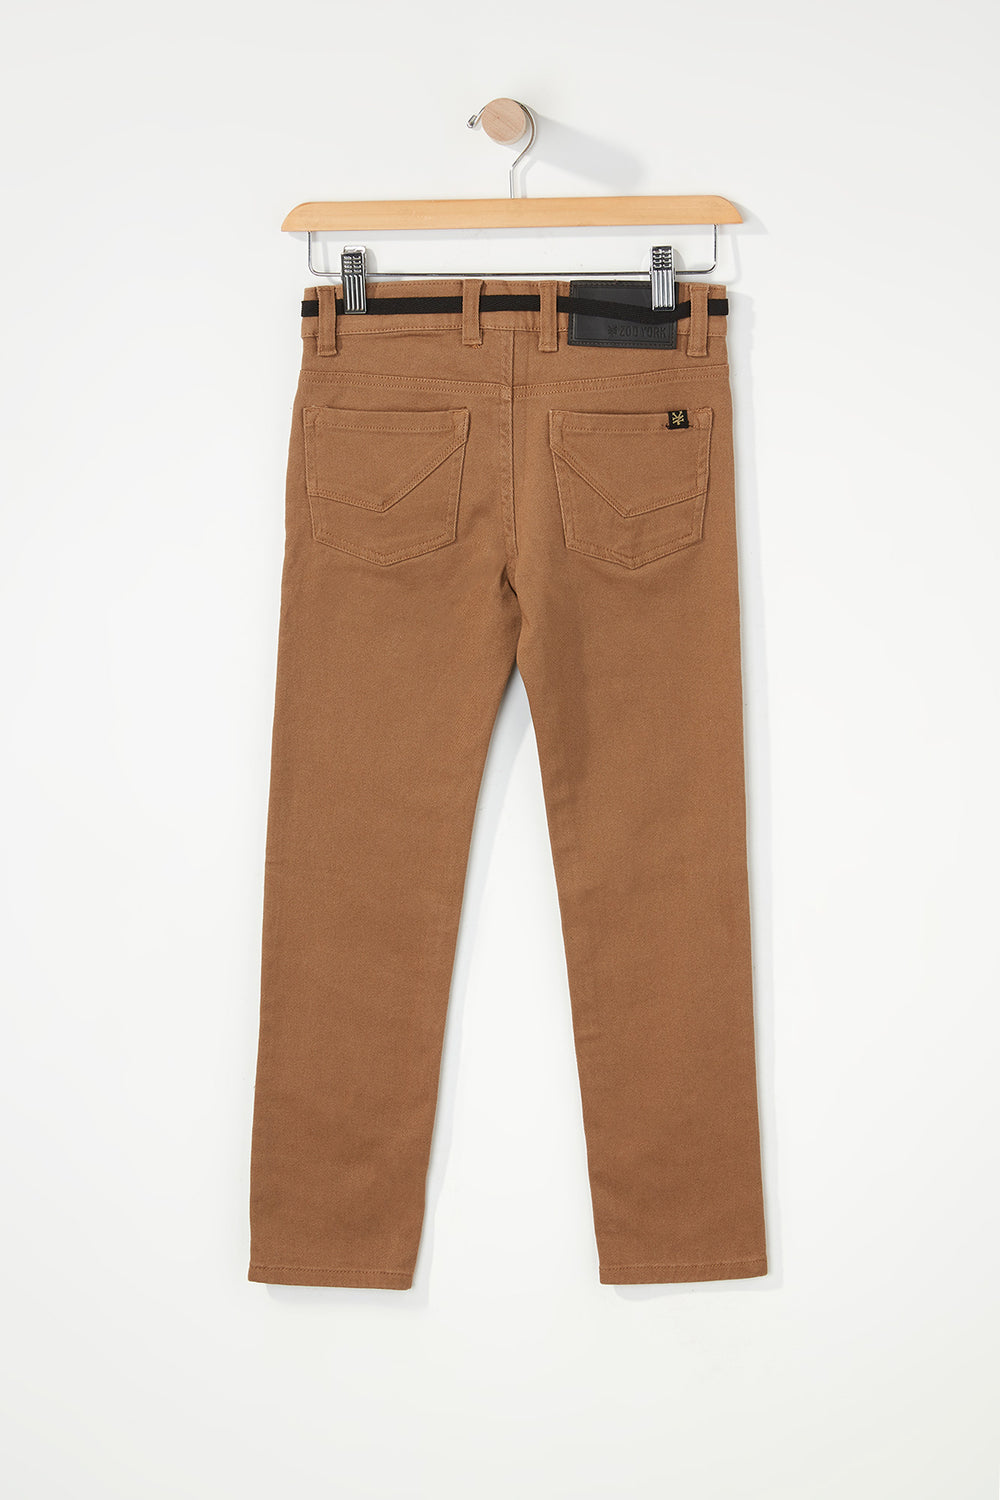 Zoo York Youth Stretch Skinny Jeans Camel